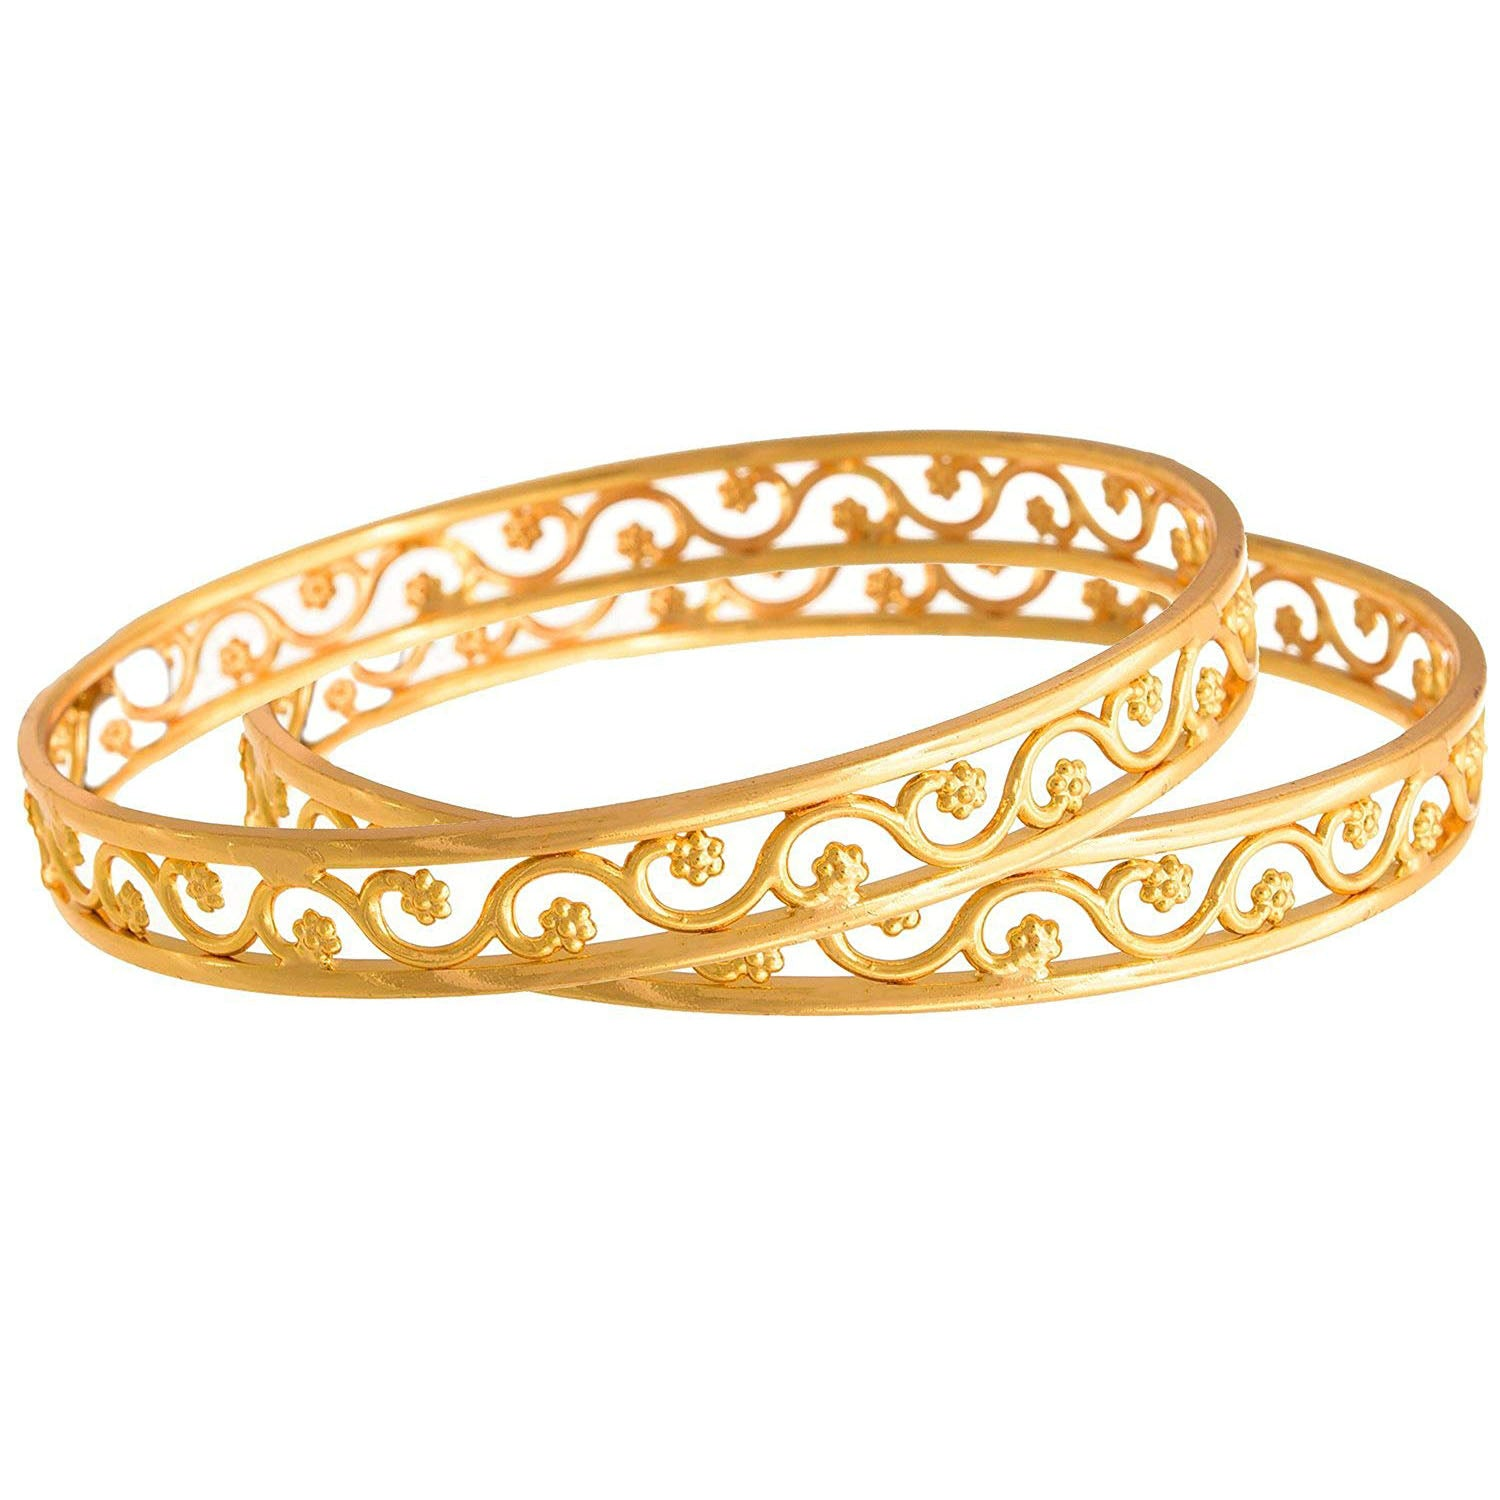 JFL-  Gold Stylish bangles For Girls & Women_Free Size